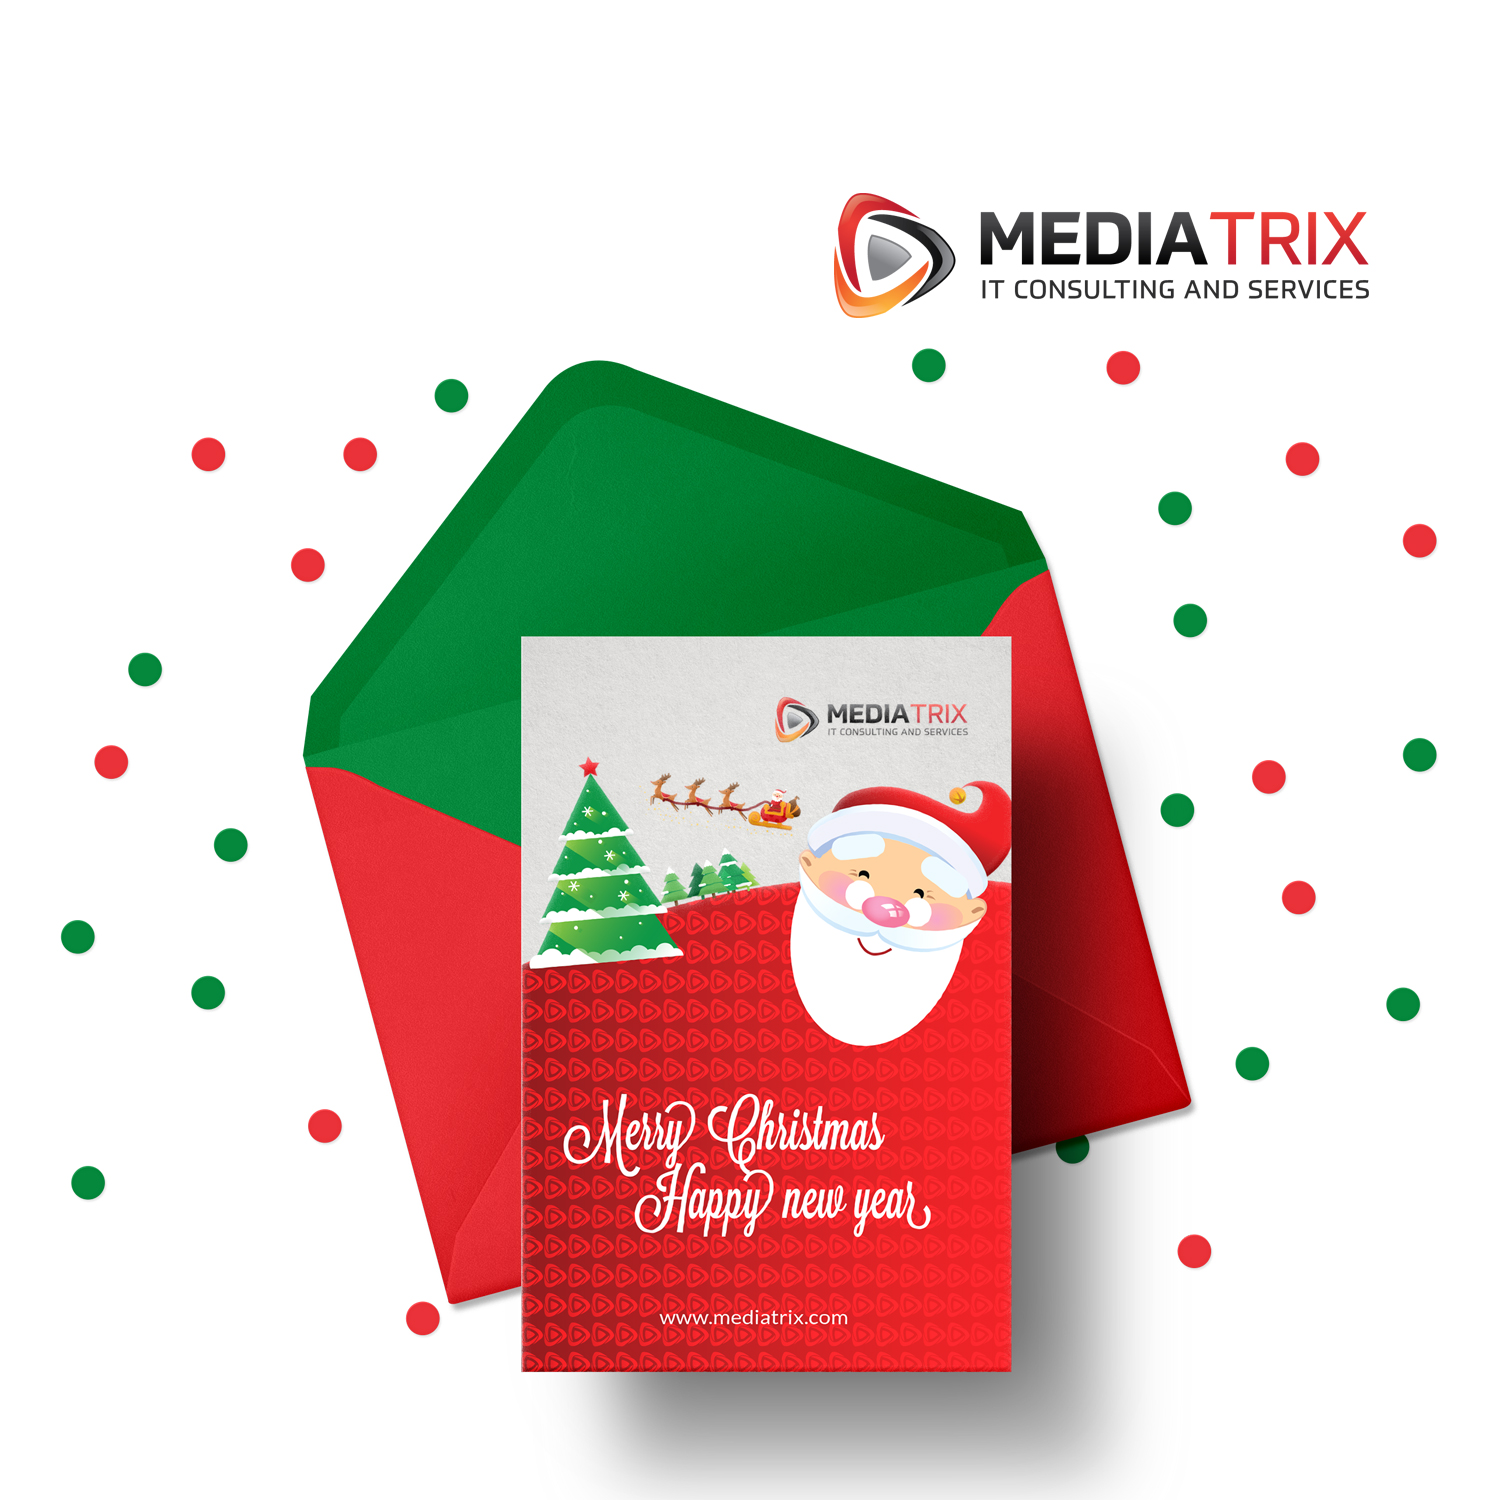 Serious Elegant It Company Greeting Card Design For Mediatrix By